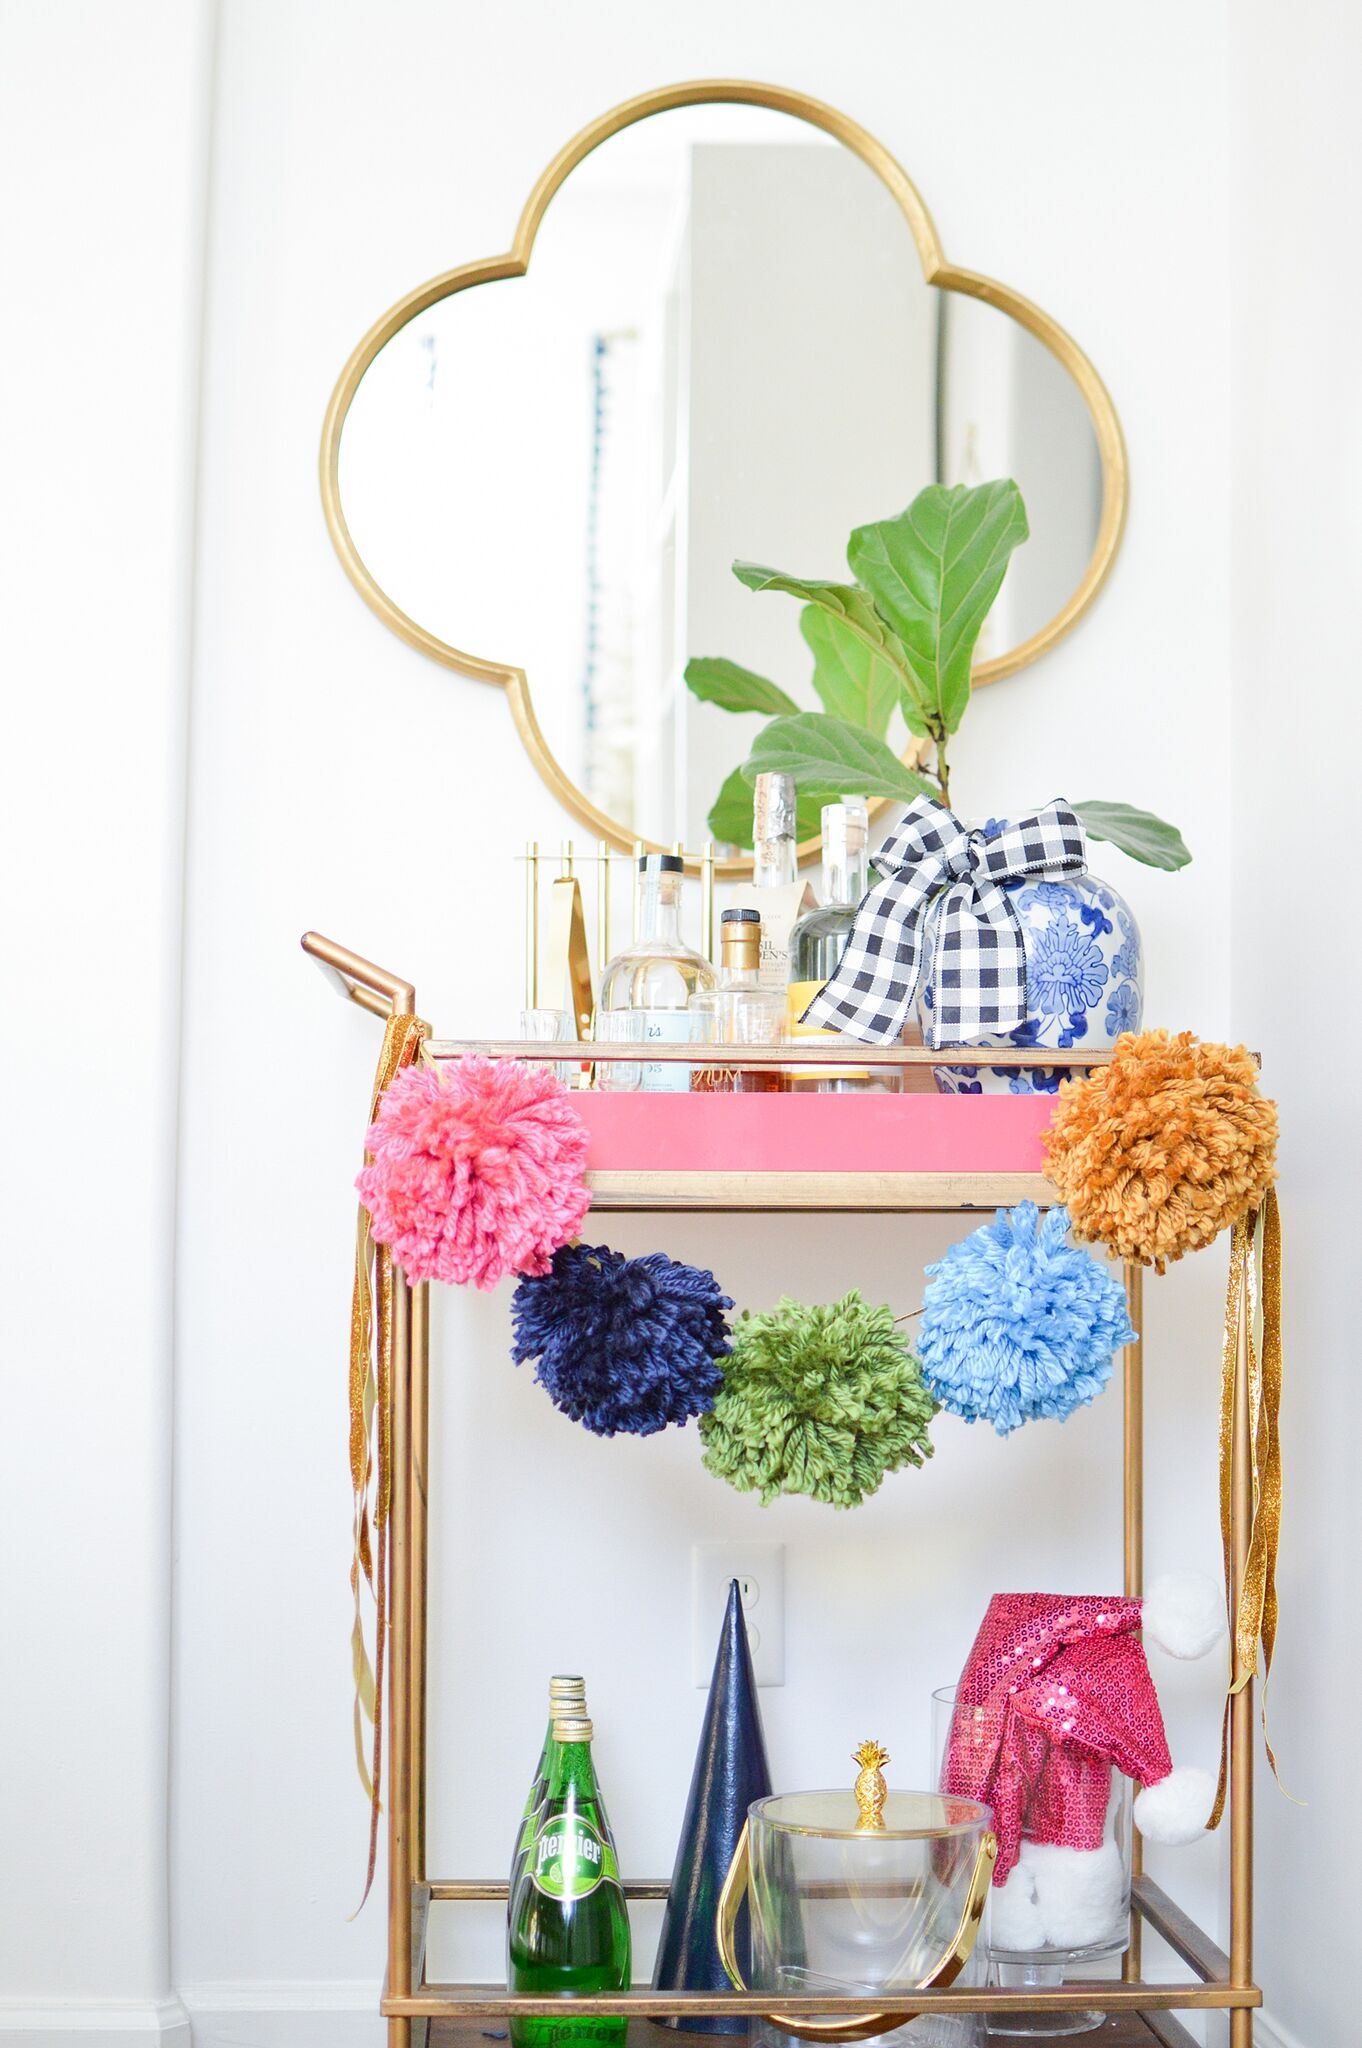 Christmas Eclectic Home Tour - love this colorful DIY pom pom garland